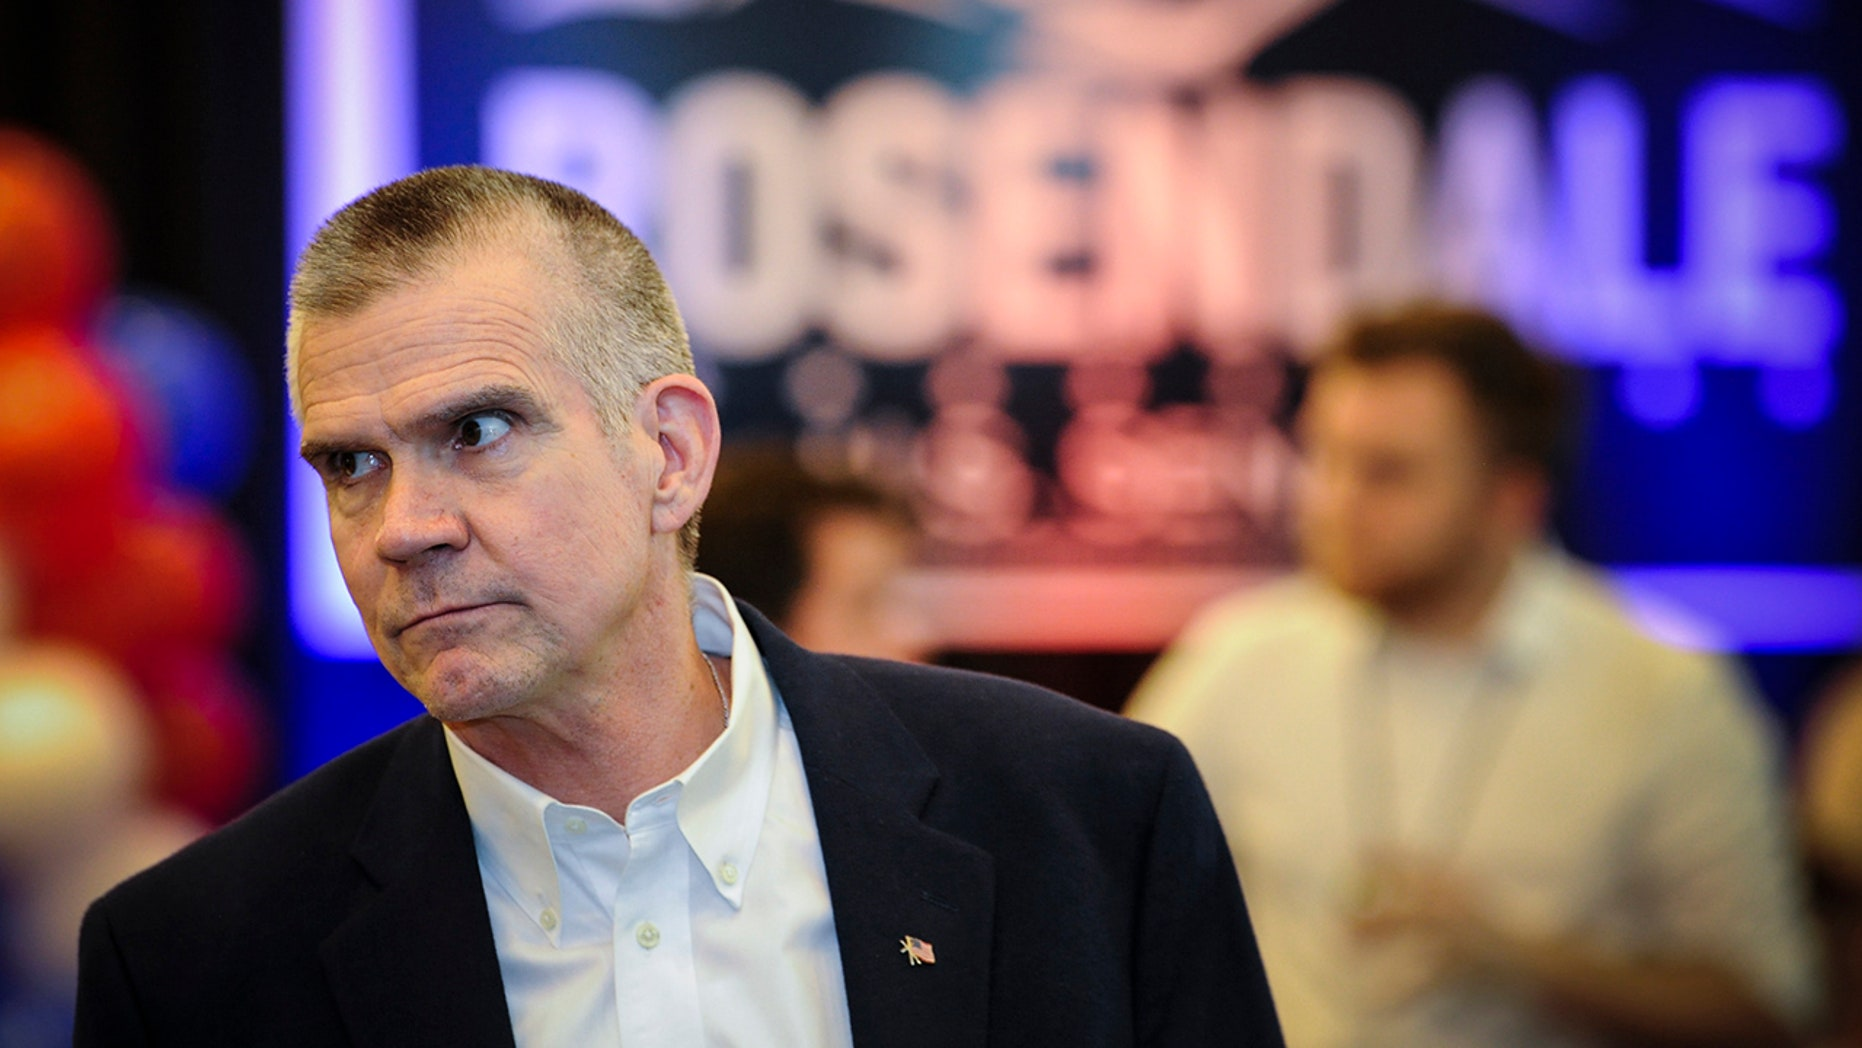 Matt Rosendale, a candidate for the Republican nomination for U.S. Senate, attends a watch party for primary returns.